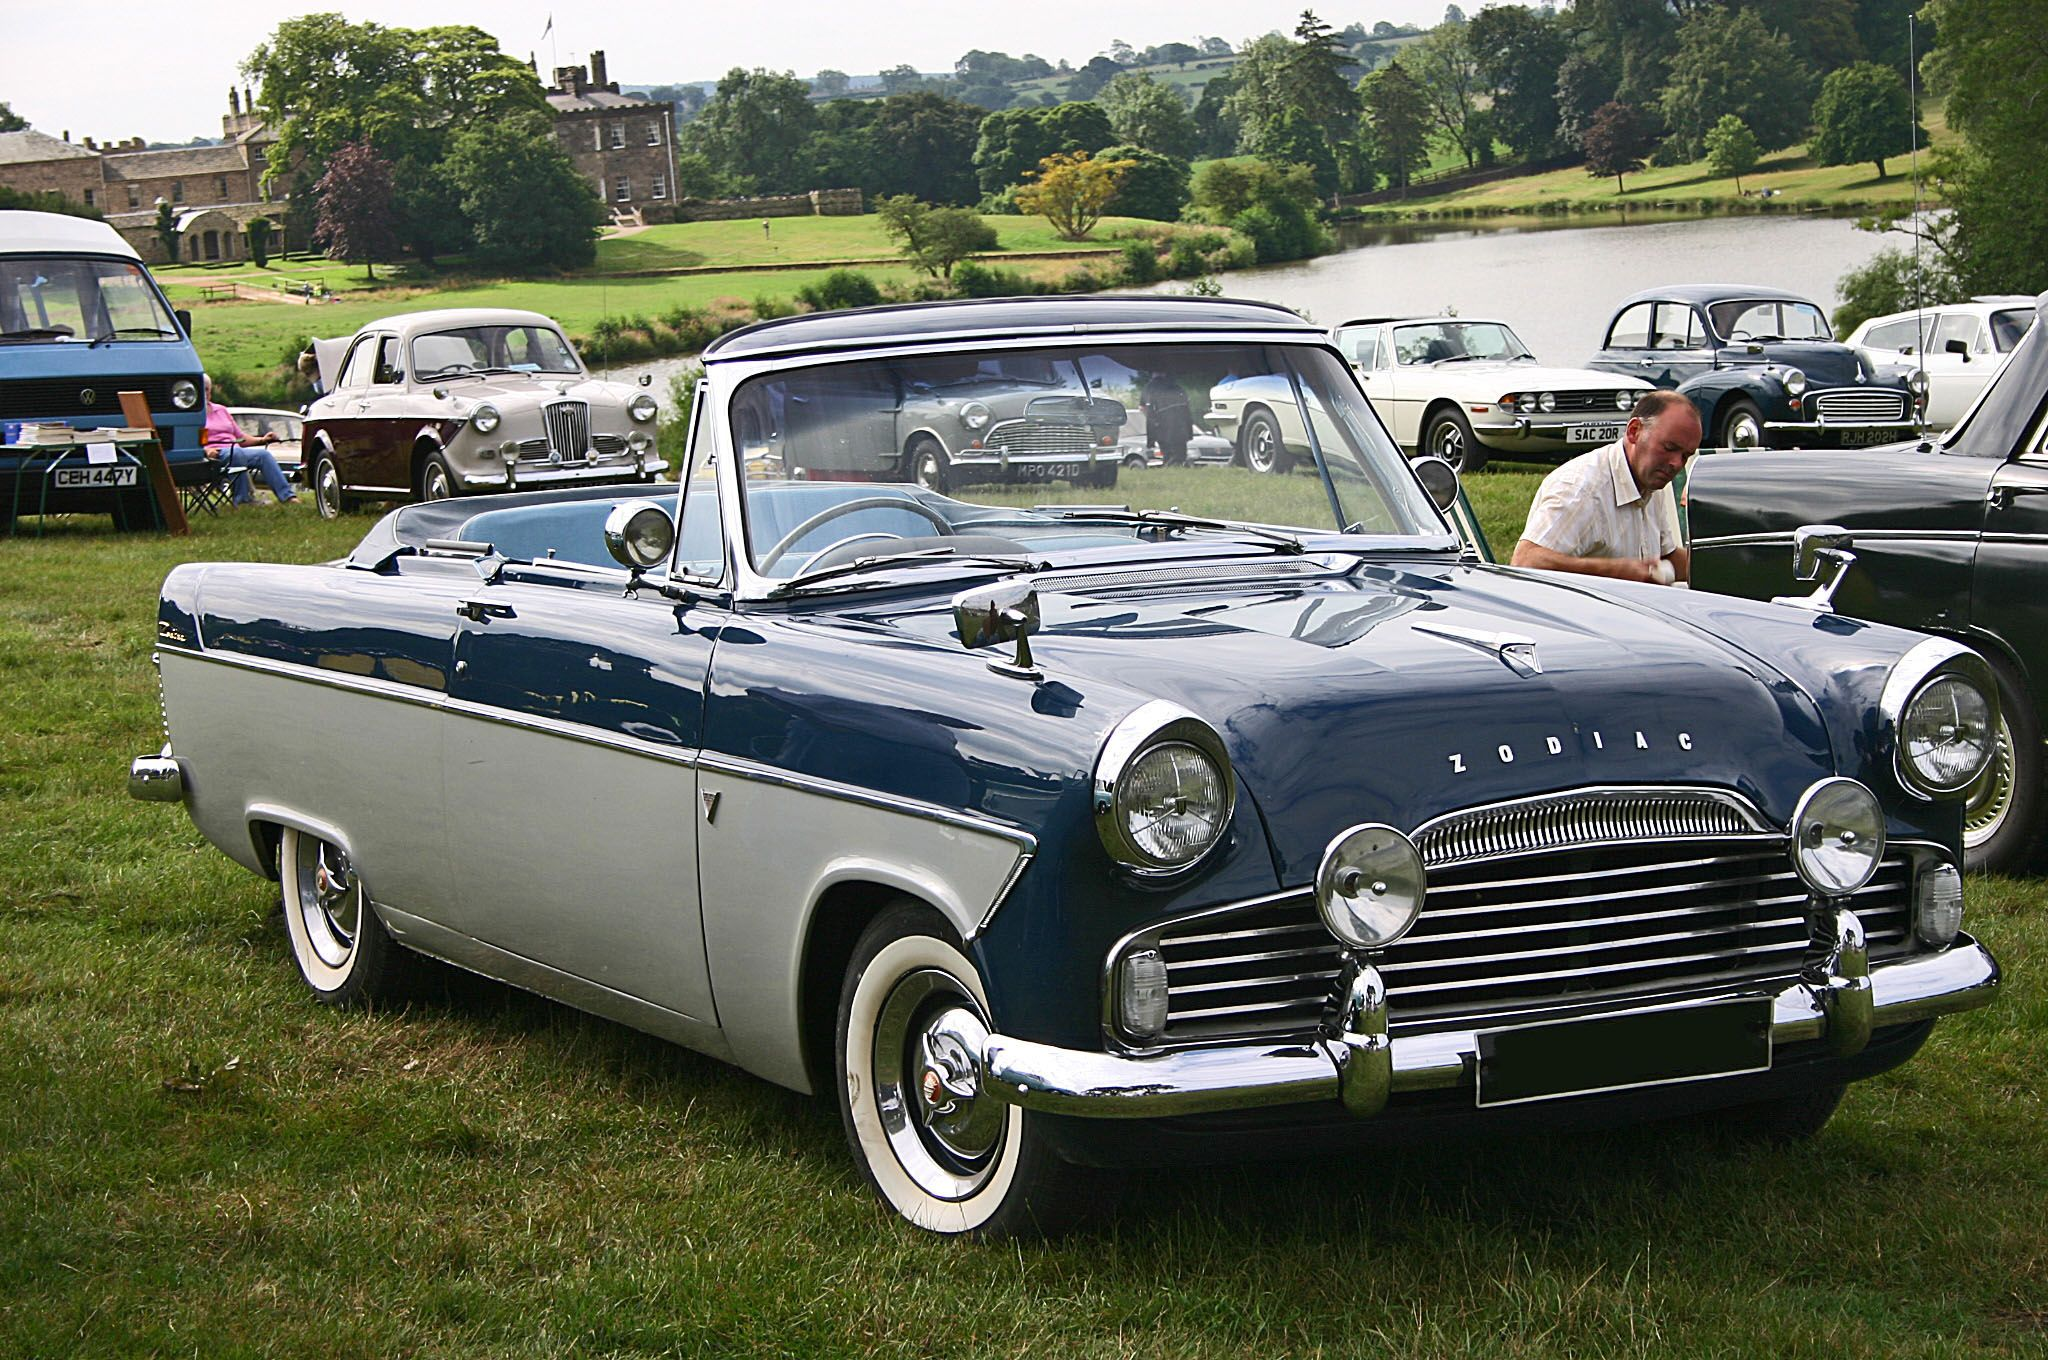 1960 Ford Zodiac Mk2 206e Convertible The Mark Ii Zodiac Was Slightly Altered To Distinguish It From The L Classic Cars British Ford Zephyr Ford Classic Cars